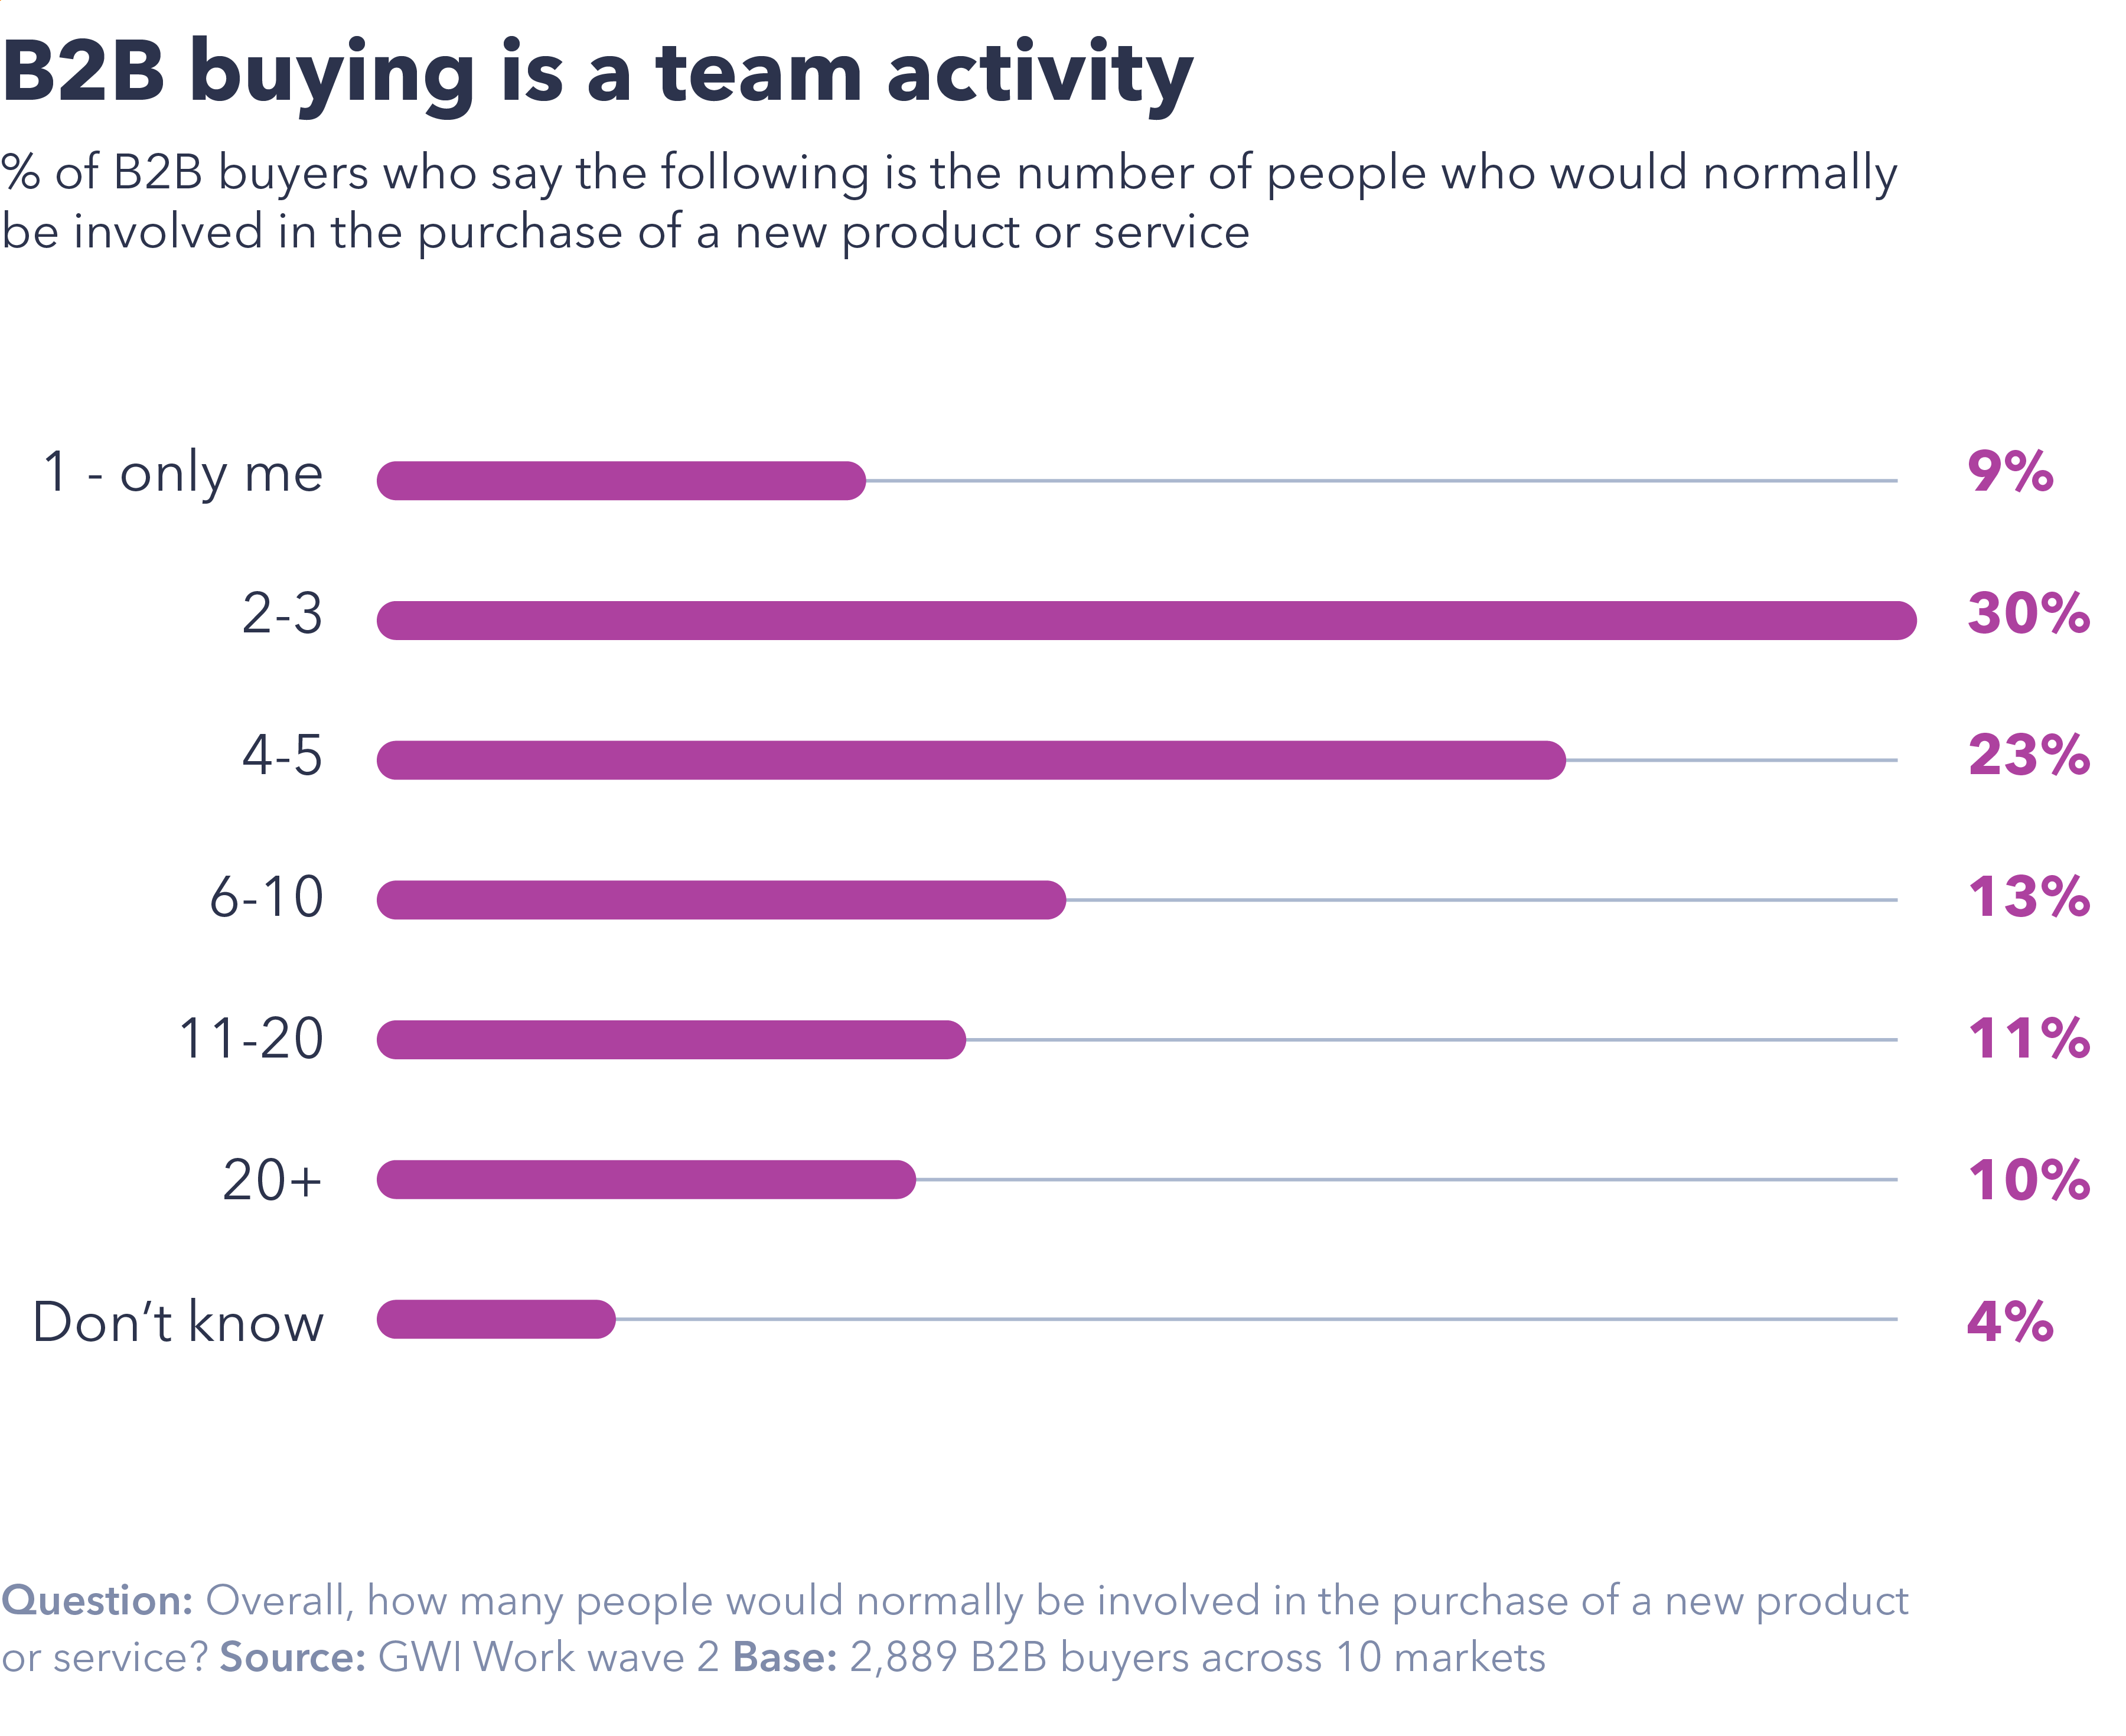 B2B Buying is a team activity